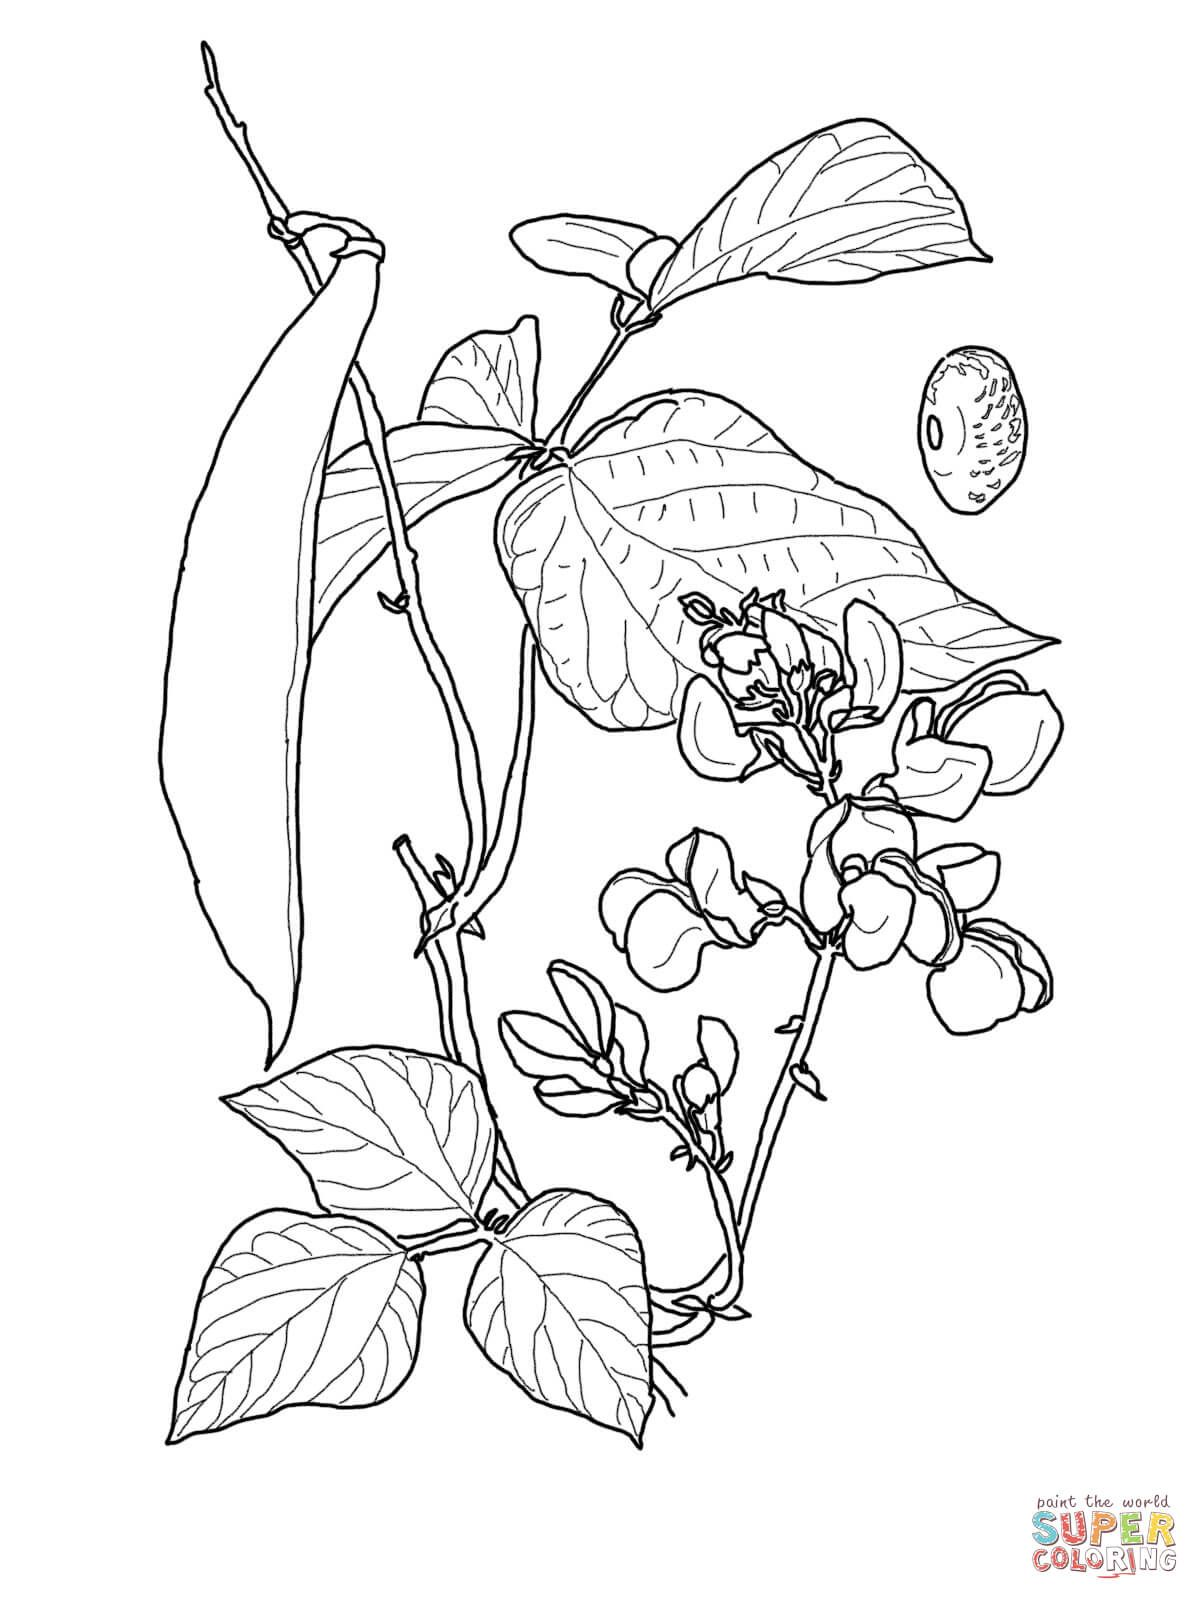 Runner Bean Super Coloring Tree Coloring Page Food Coloring